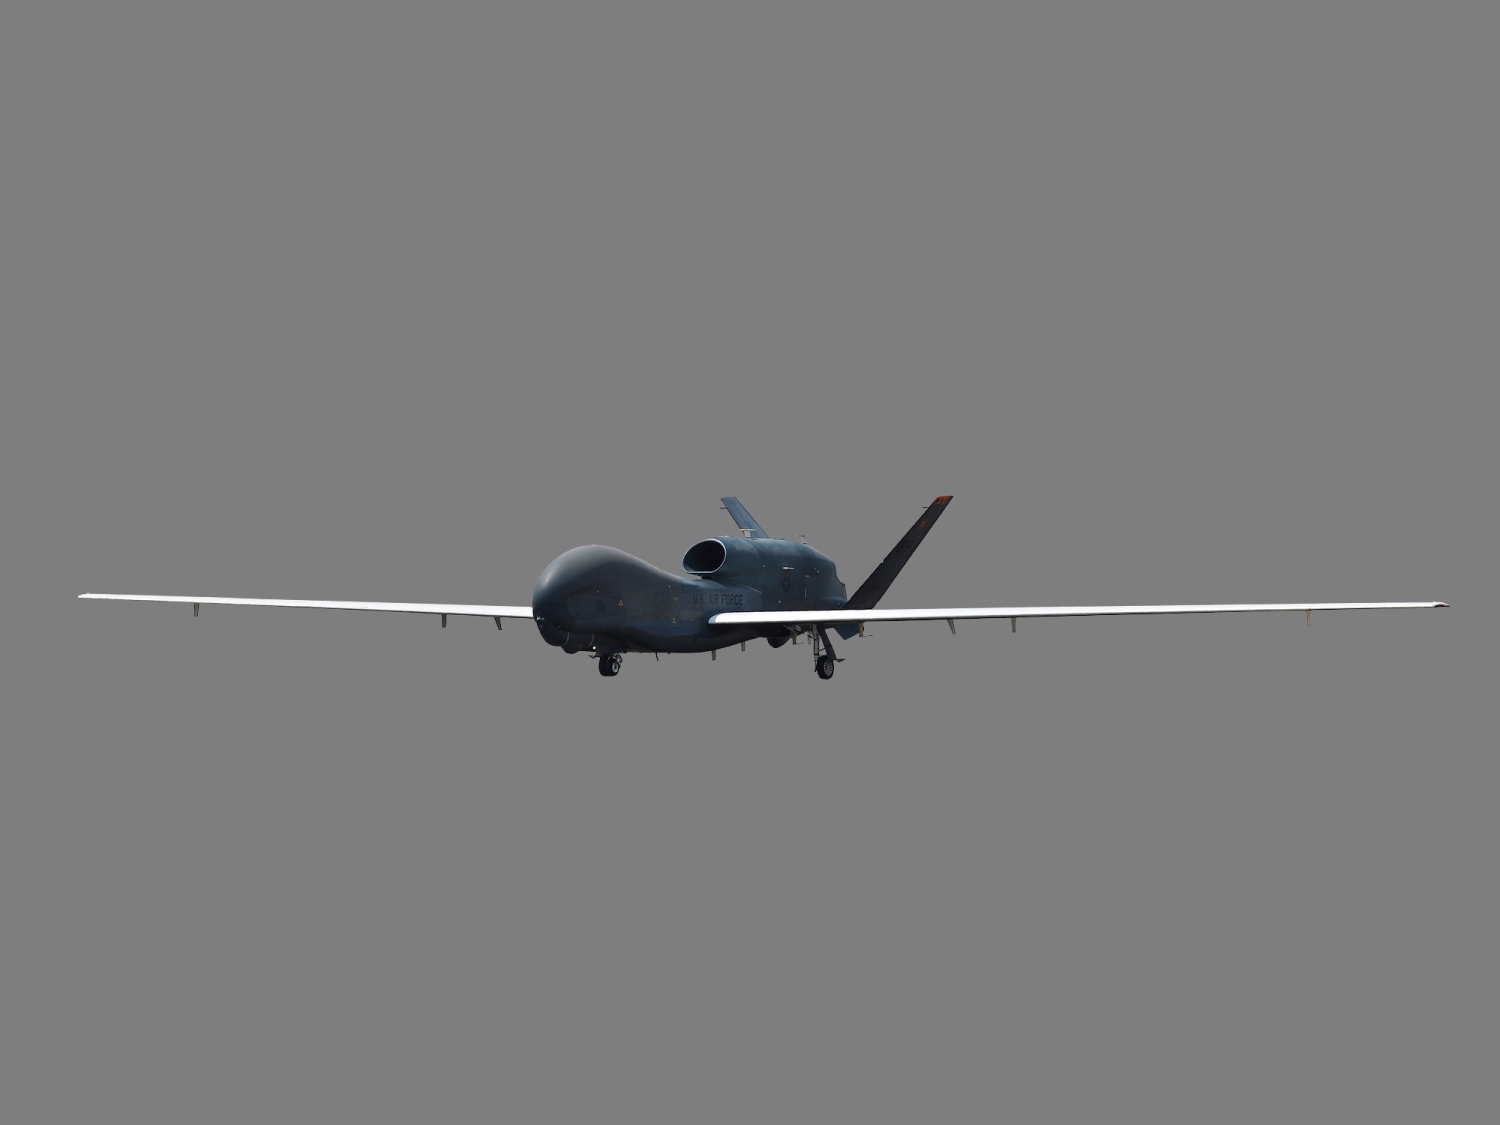 US Air Force RQ-4 Global Hawk unmanned aircraft, US Air Force image, graphic element on gray